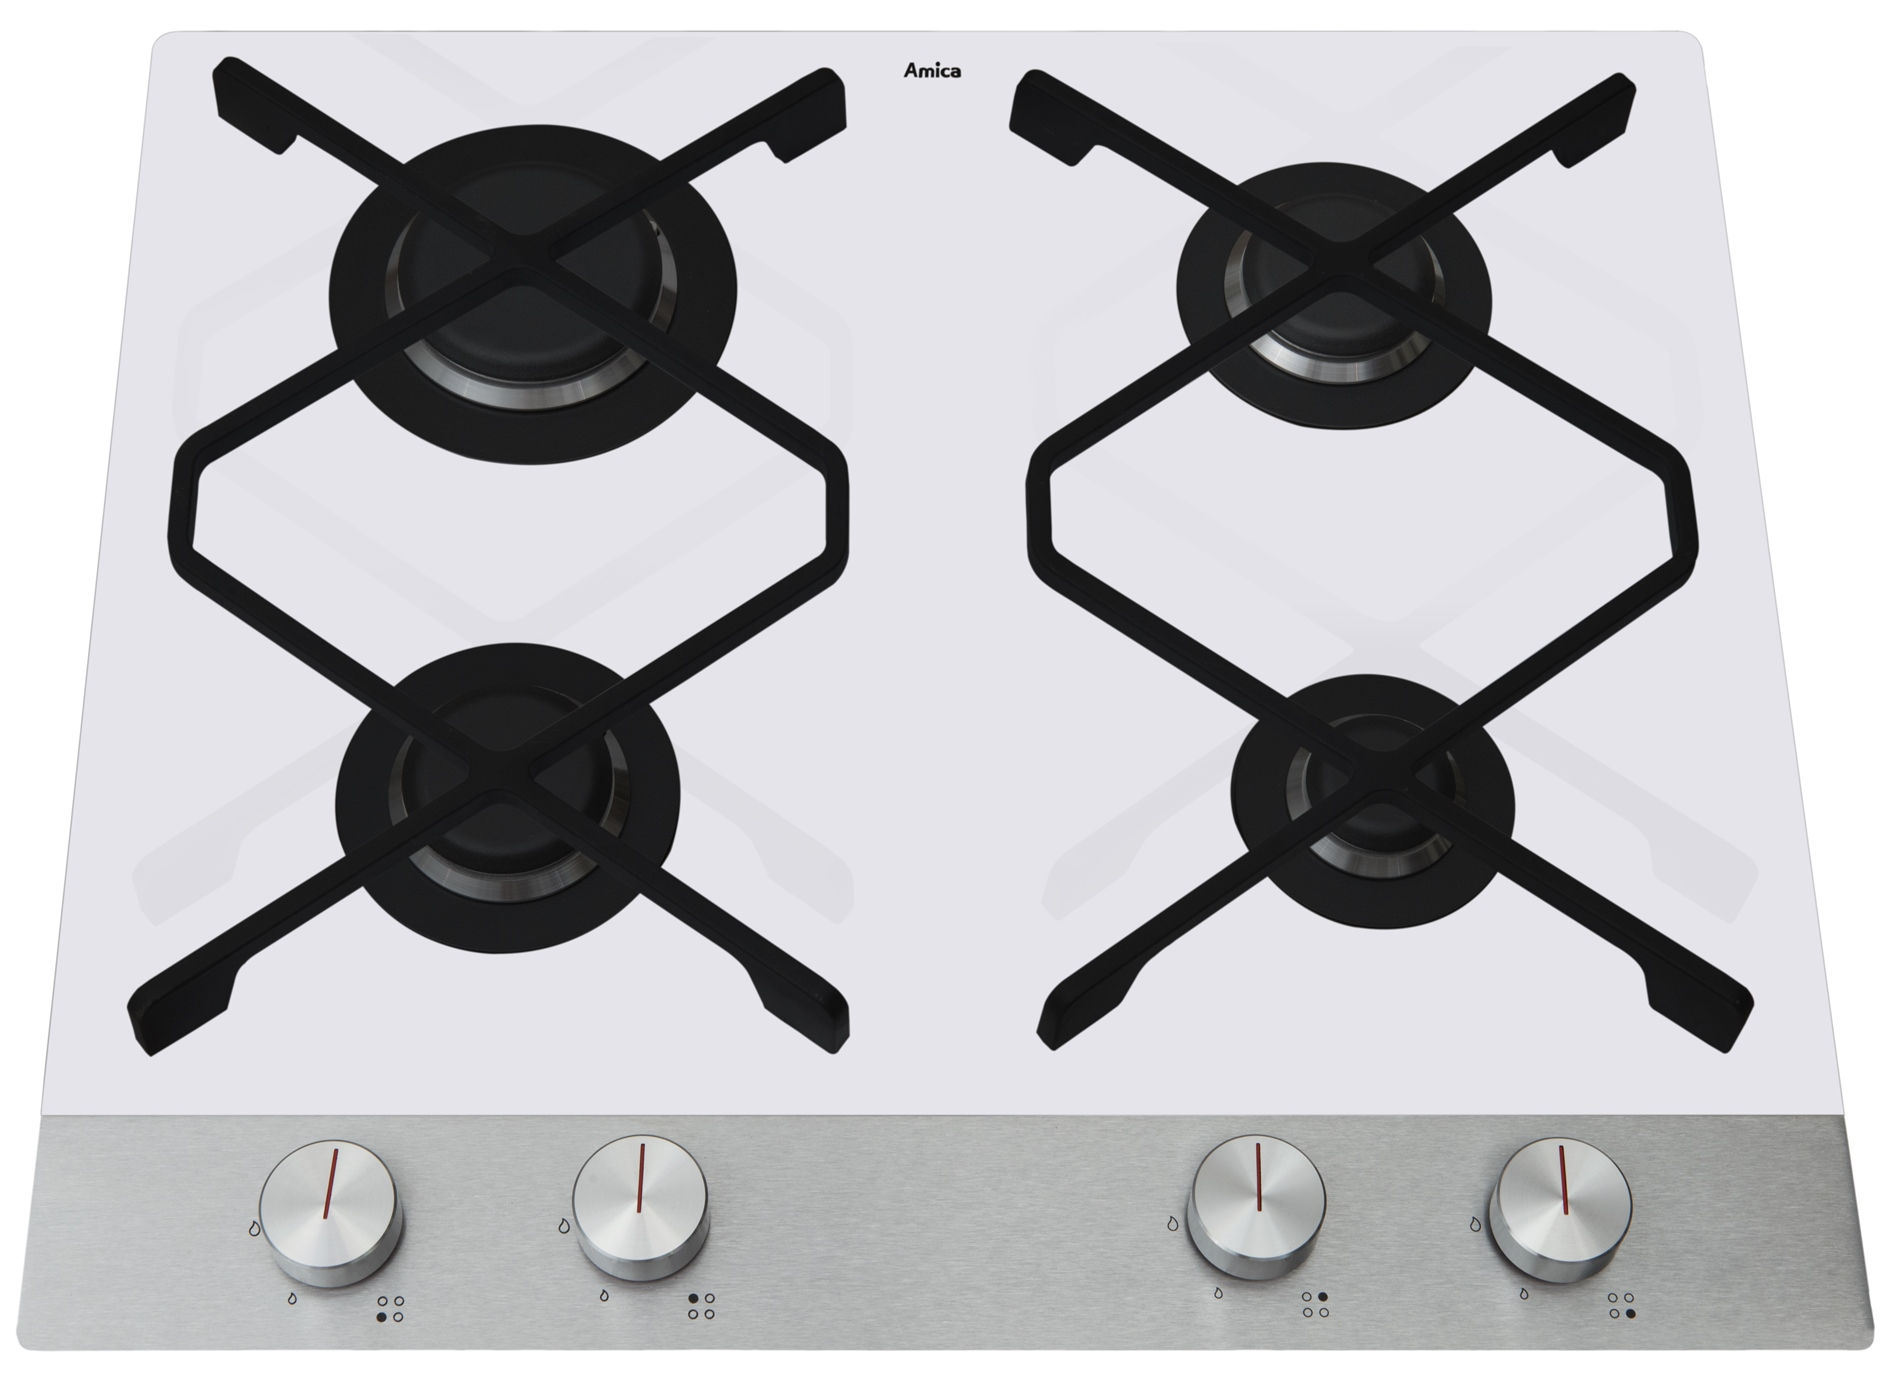 Built in ceramic hob with gas burners Amica IN PG6610SRW